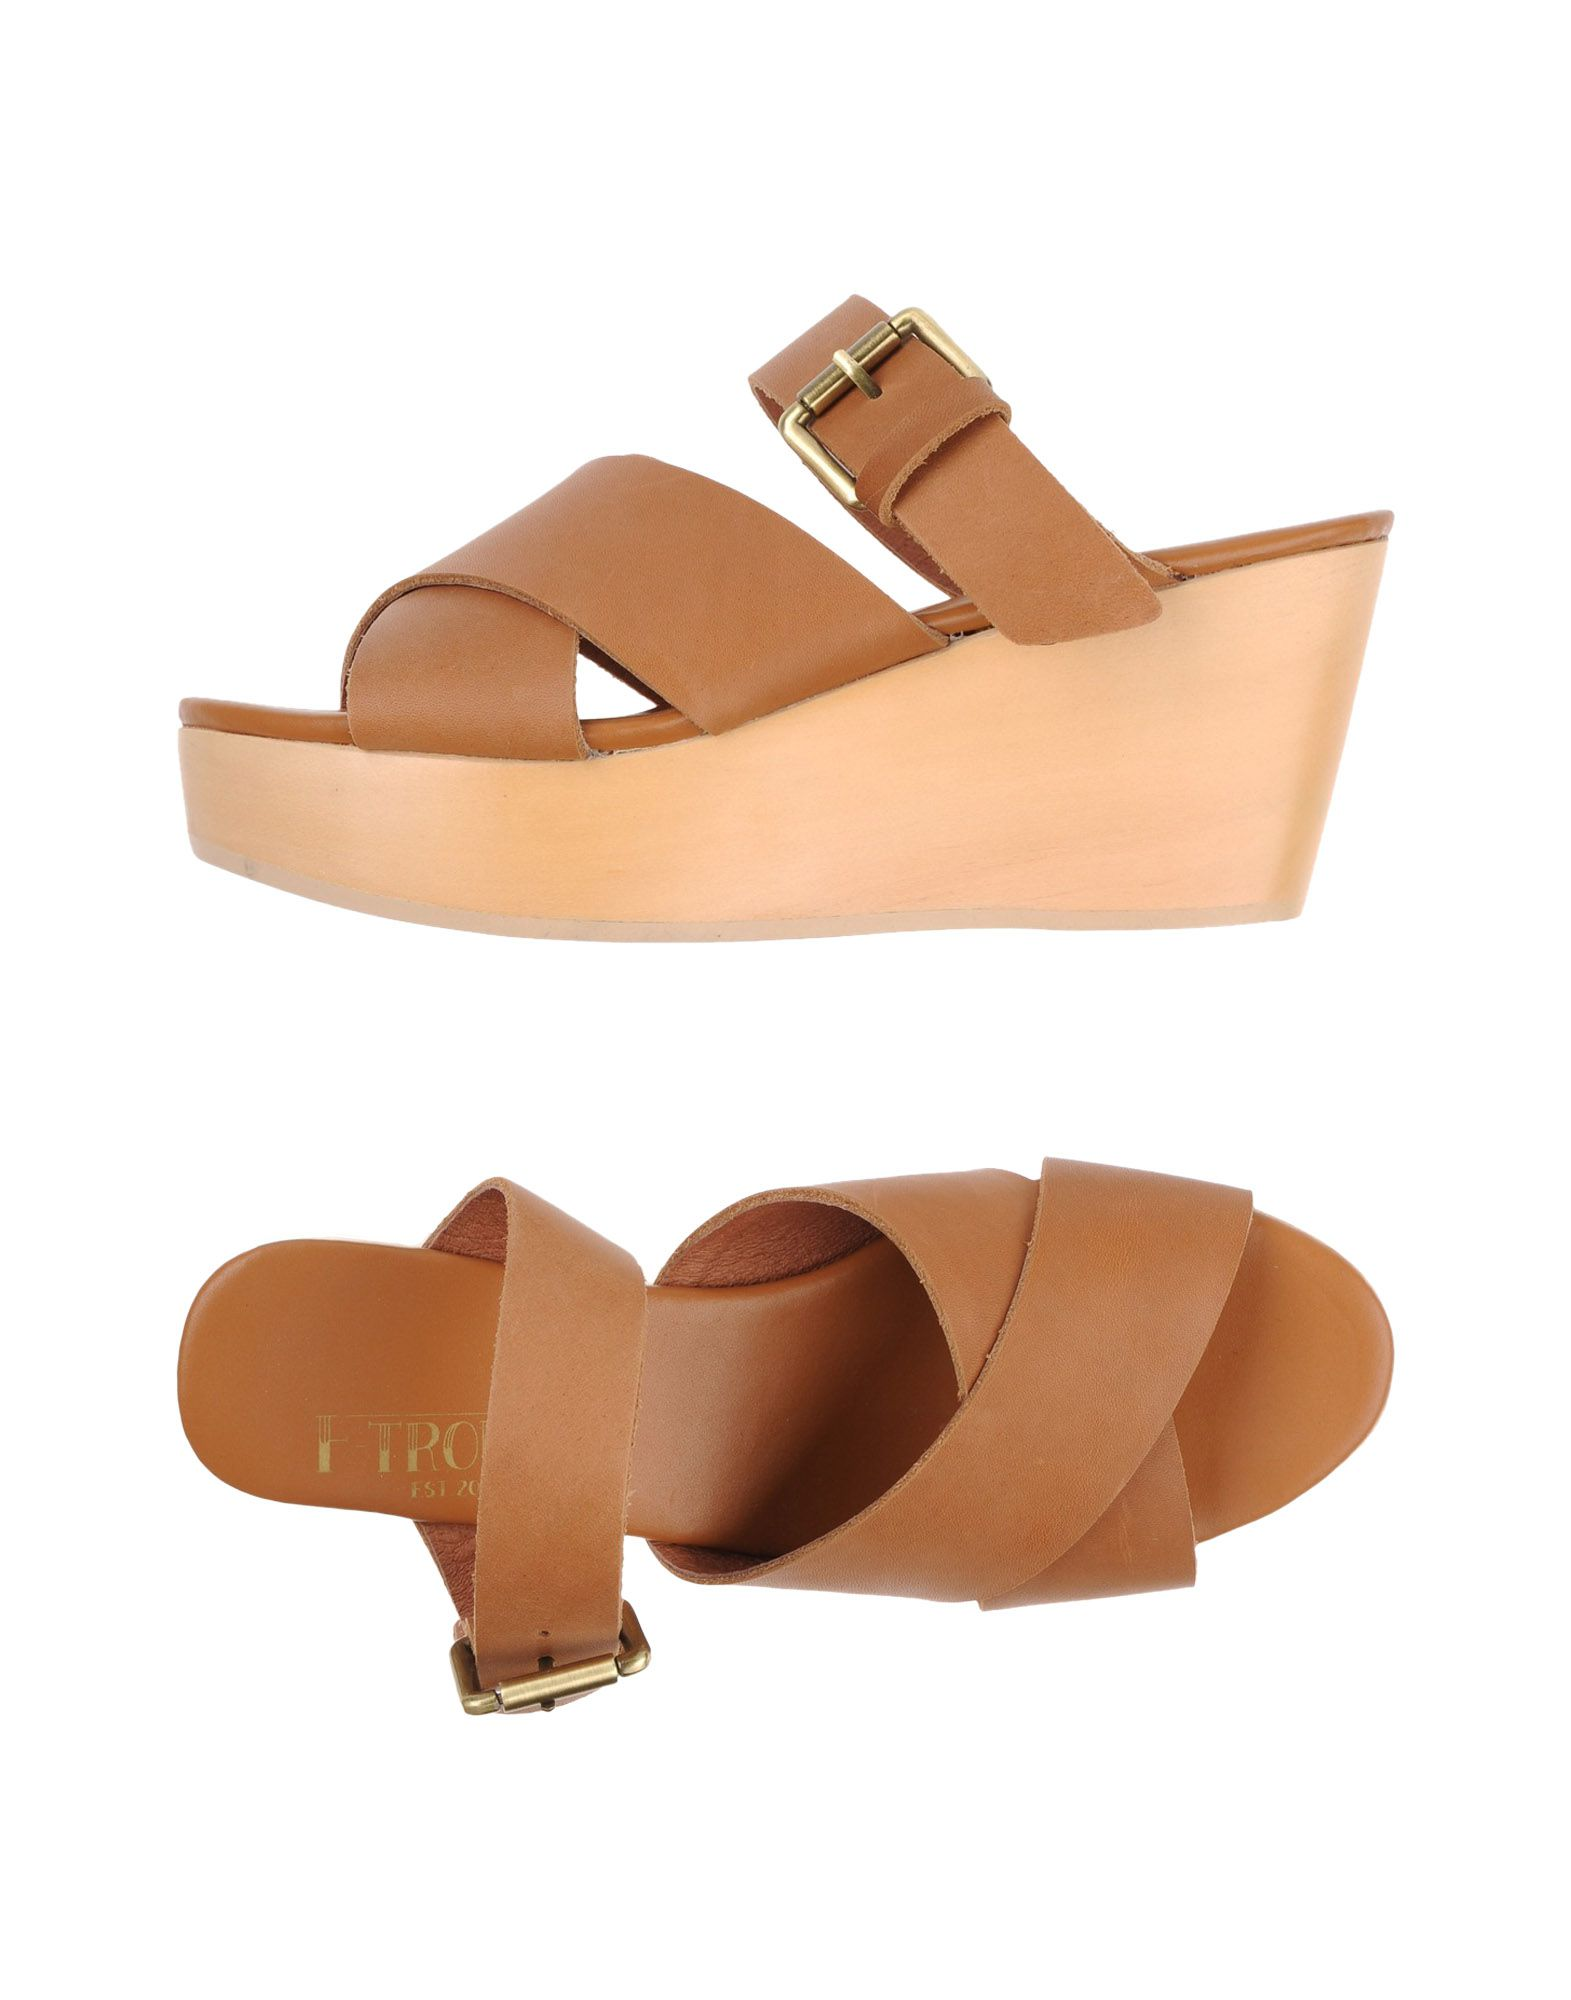 F-TROUPE Sandals in Brown